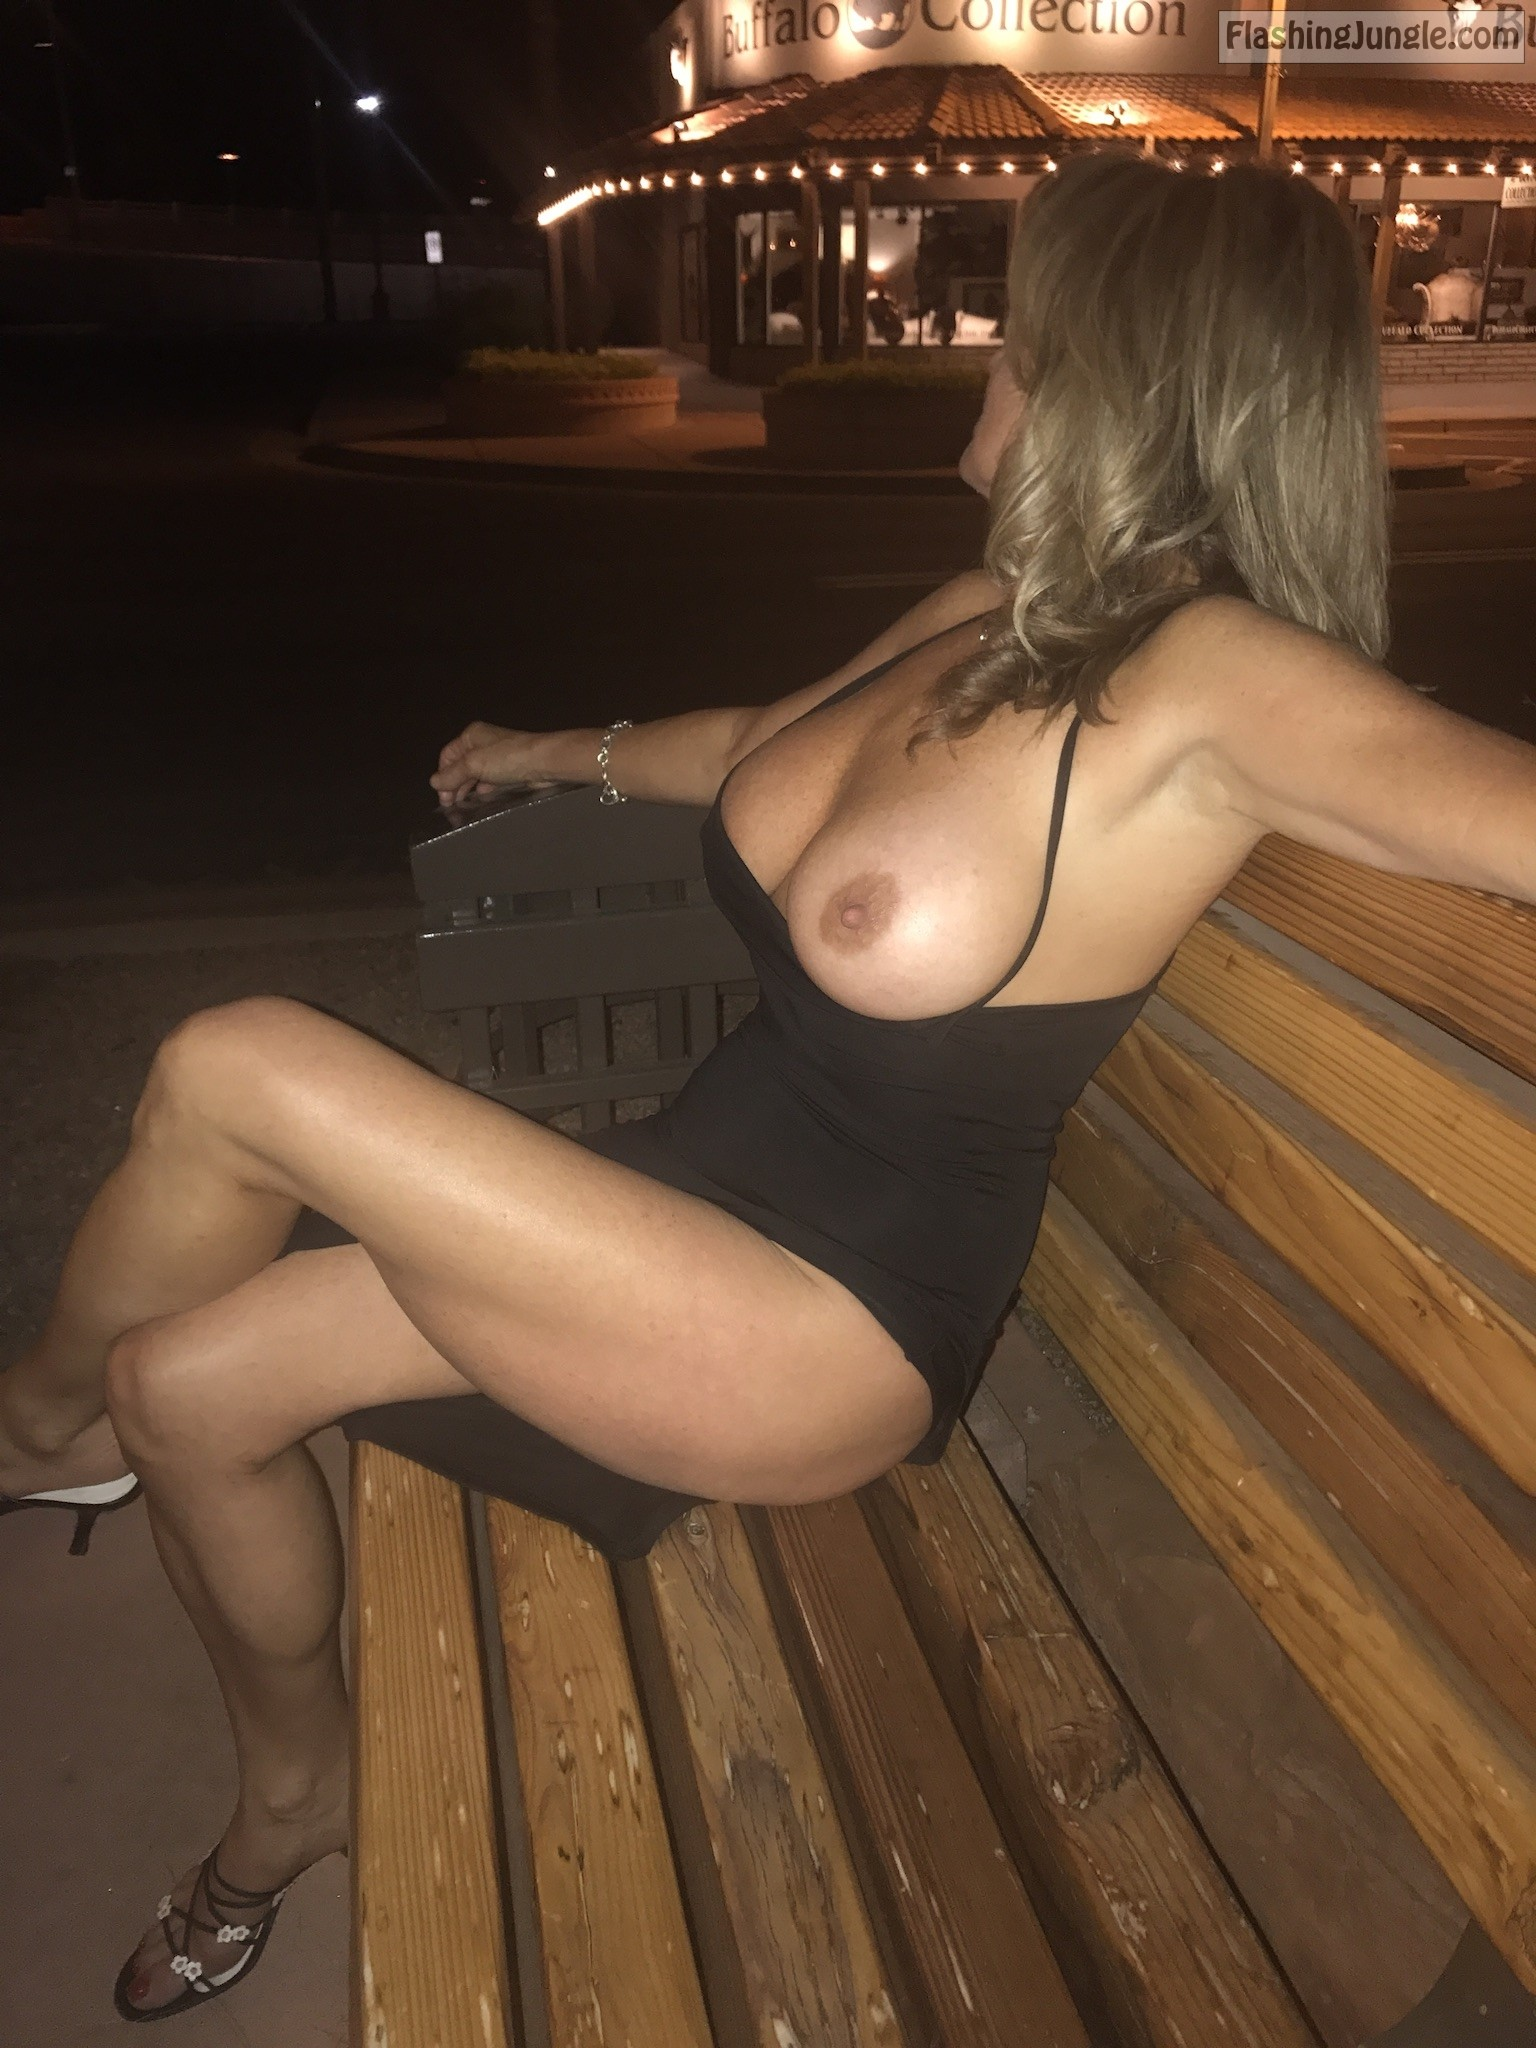 Johns Sexy Wife Flashing Boobs Outdoors Boobs Flash Pics -4125